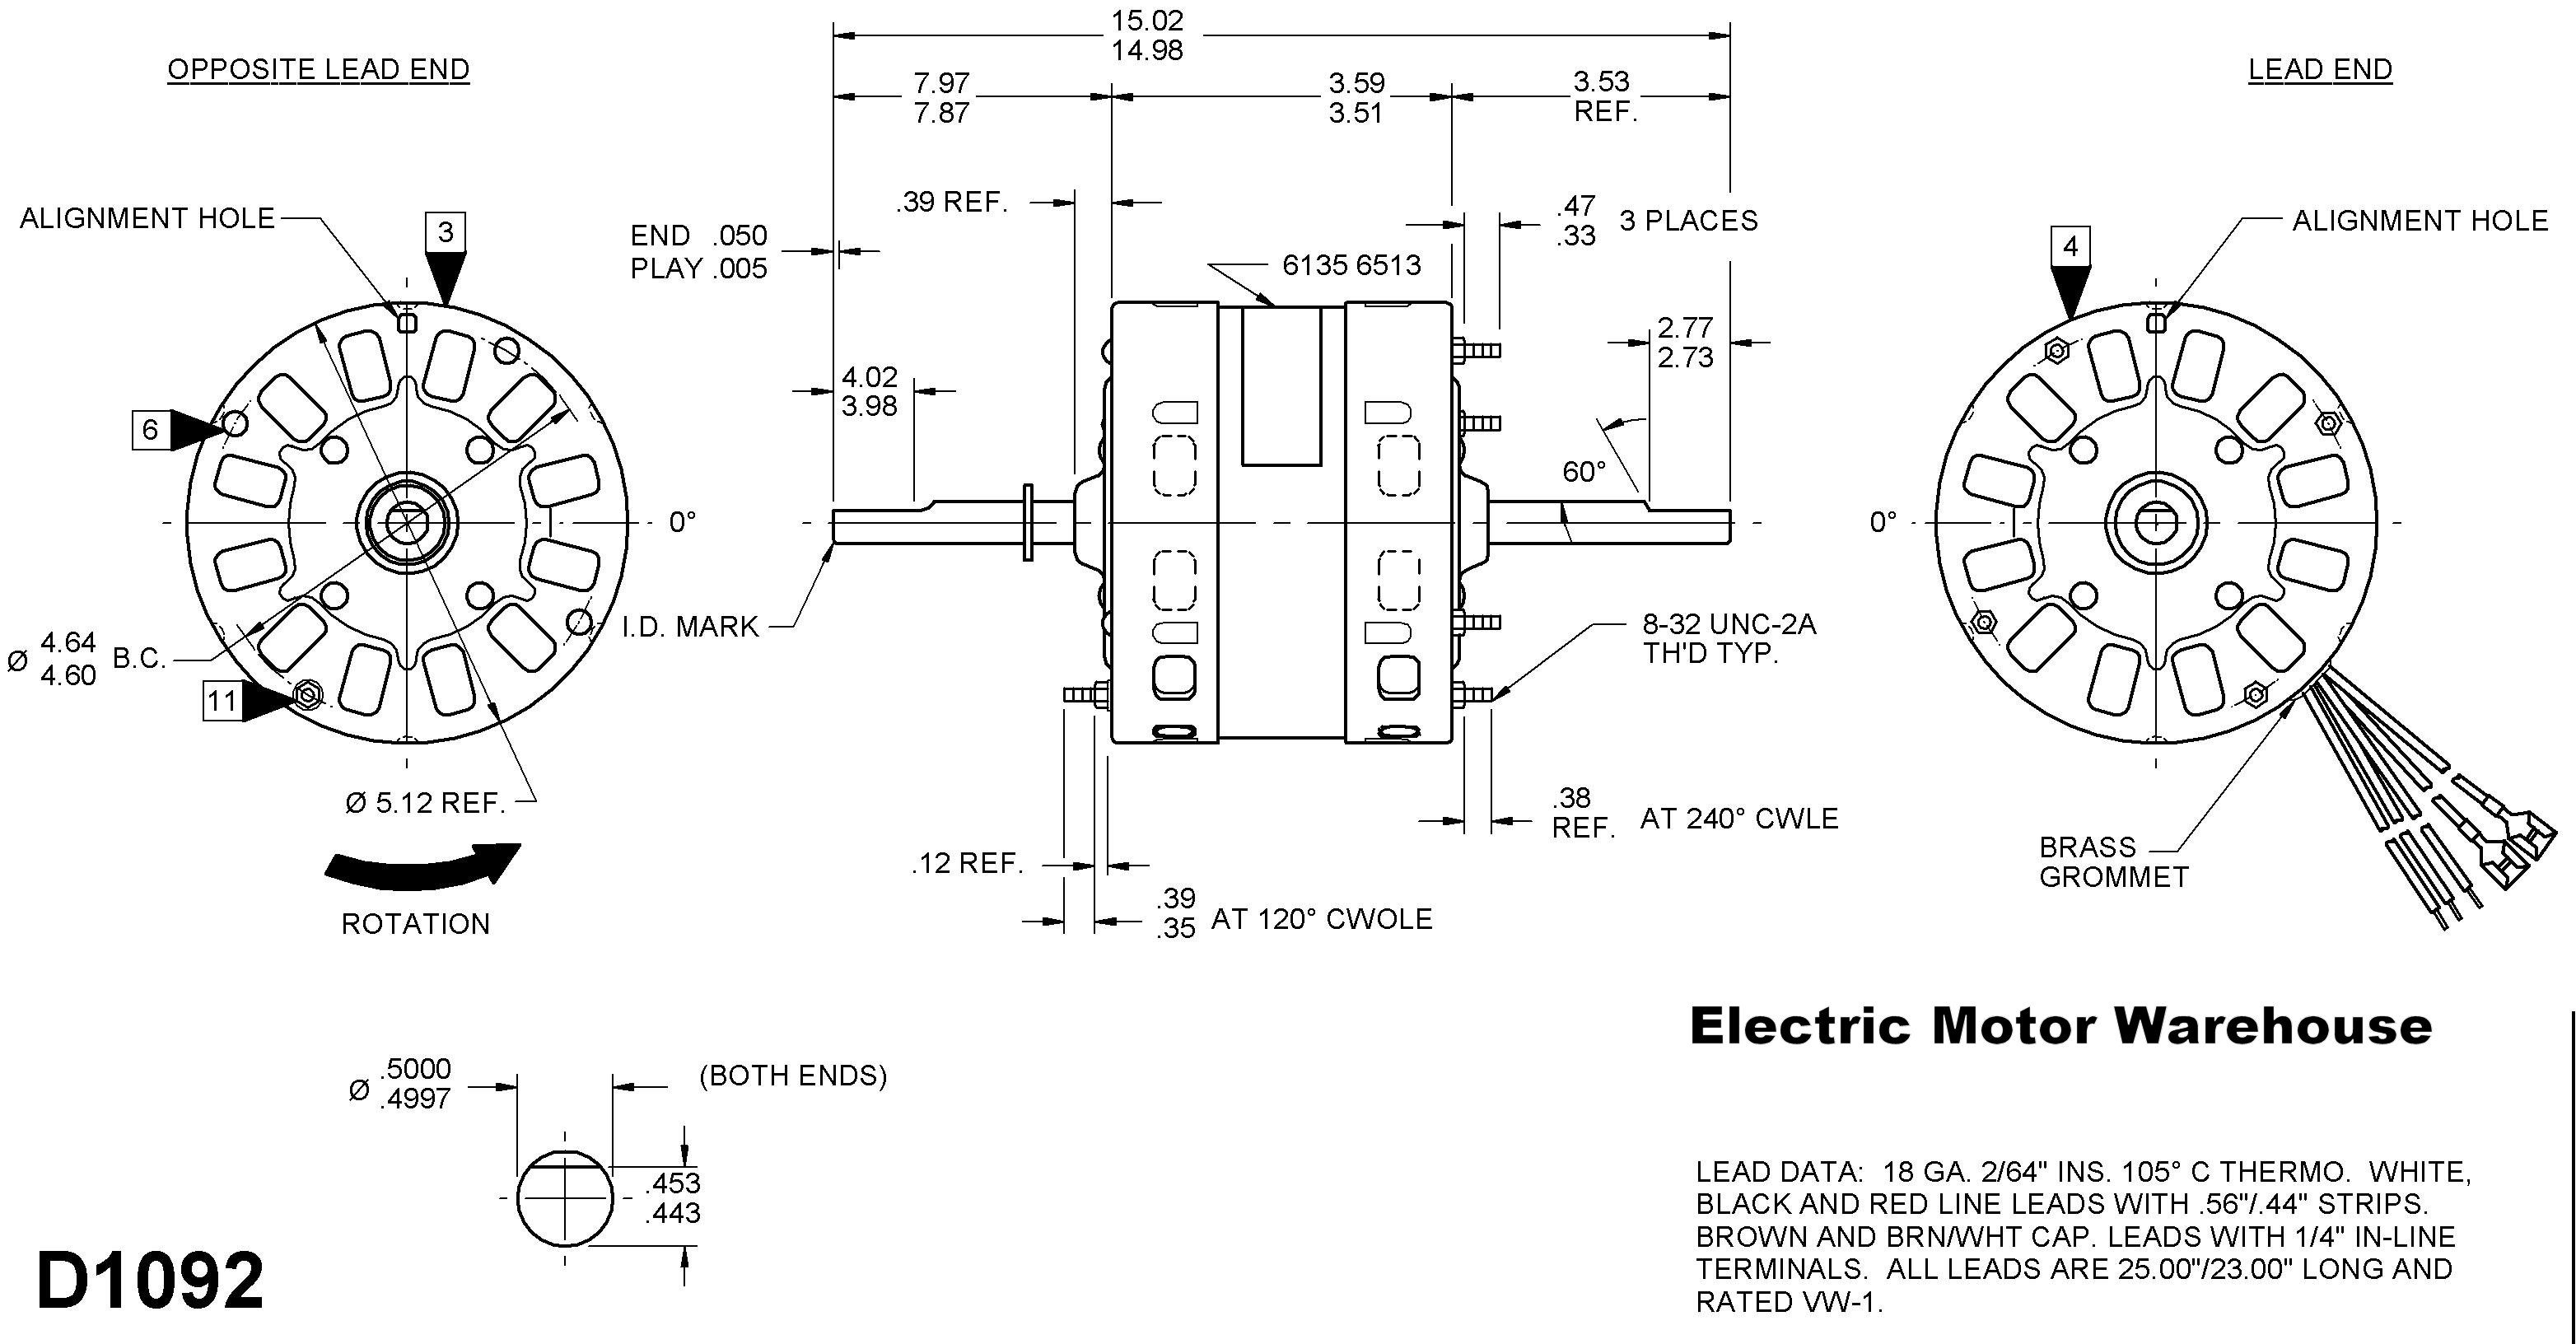 Emerson 2hp Electric Motor Wiring Diagram 1 3 Hp 115v 1625 Rpm 2 Speed Rv Air Conditioner Motor